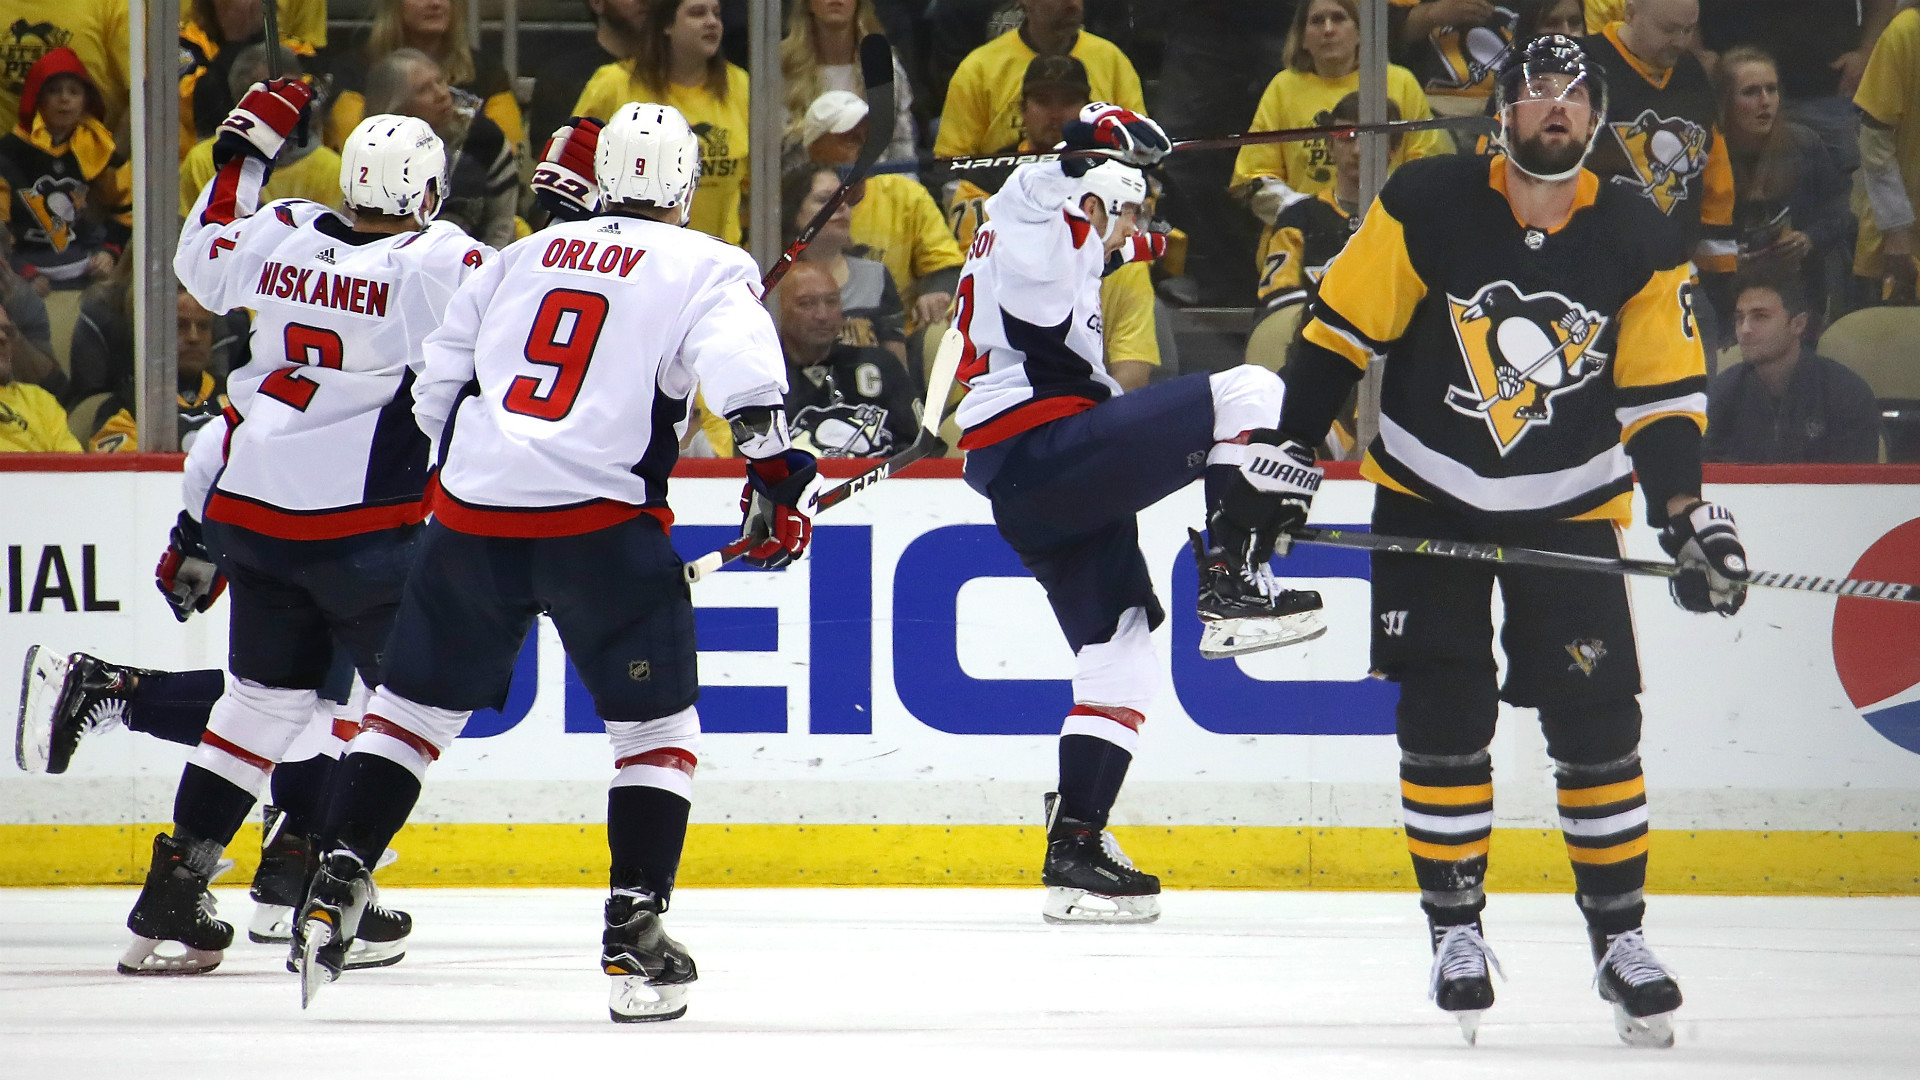 NHL Playoffs 2018: Capitals advance to East finals for first time in 20 years